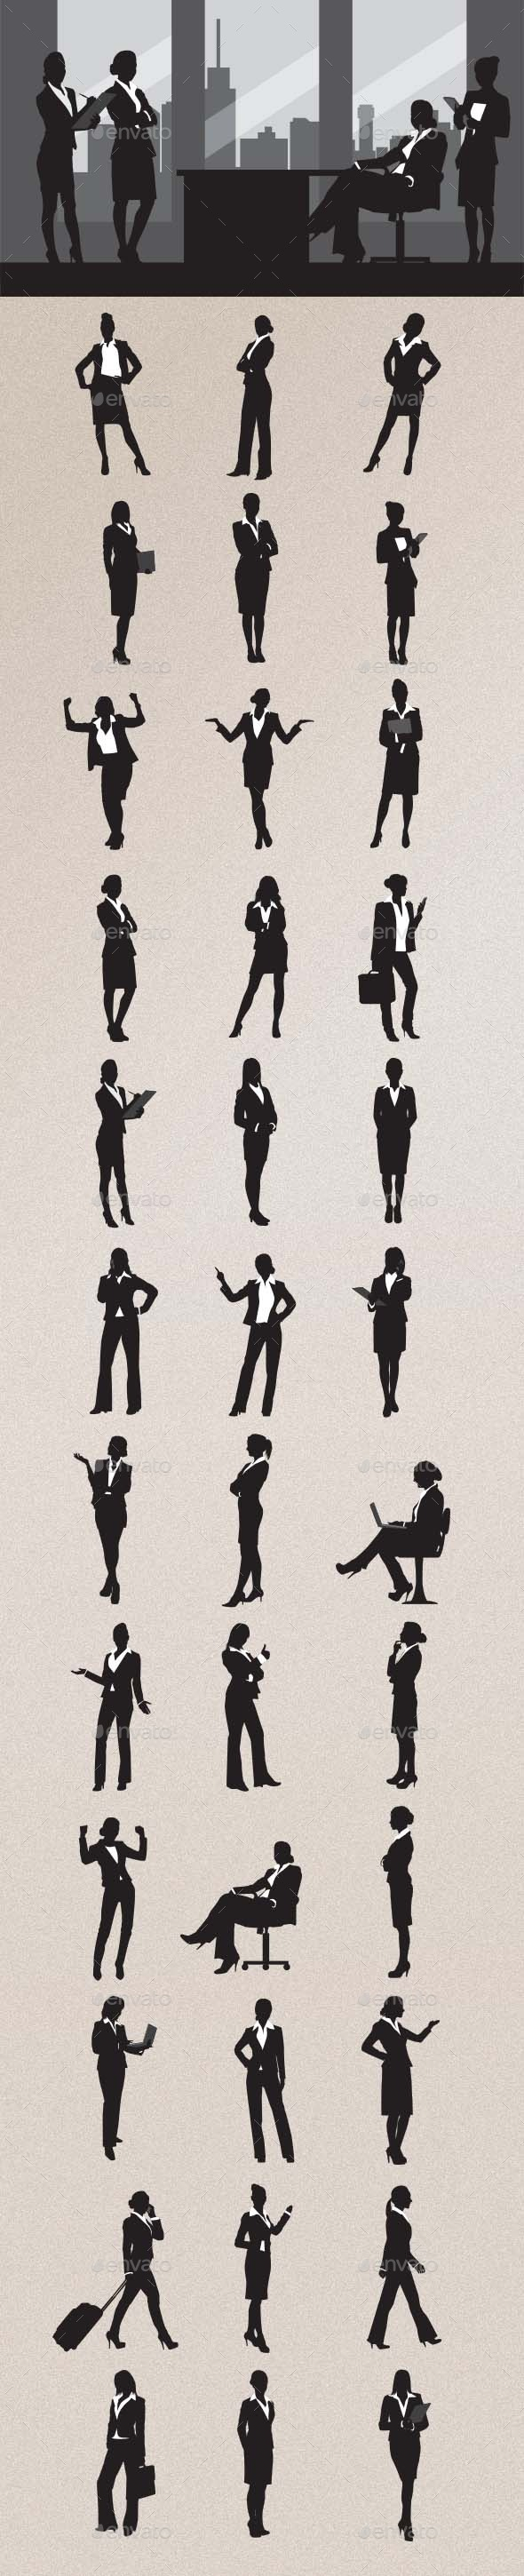 GraphicRiver Business Woman Silhouettes 8943538